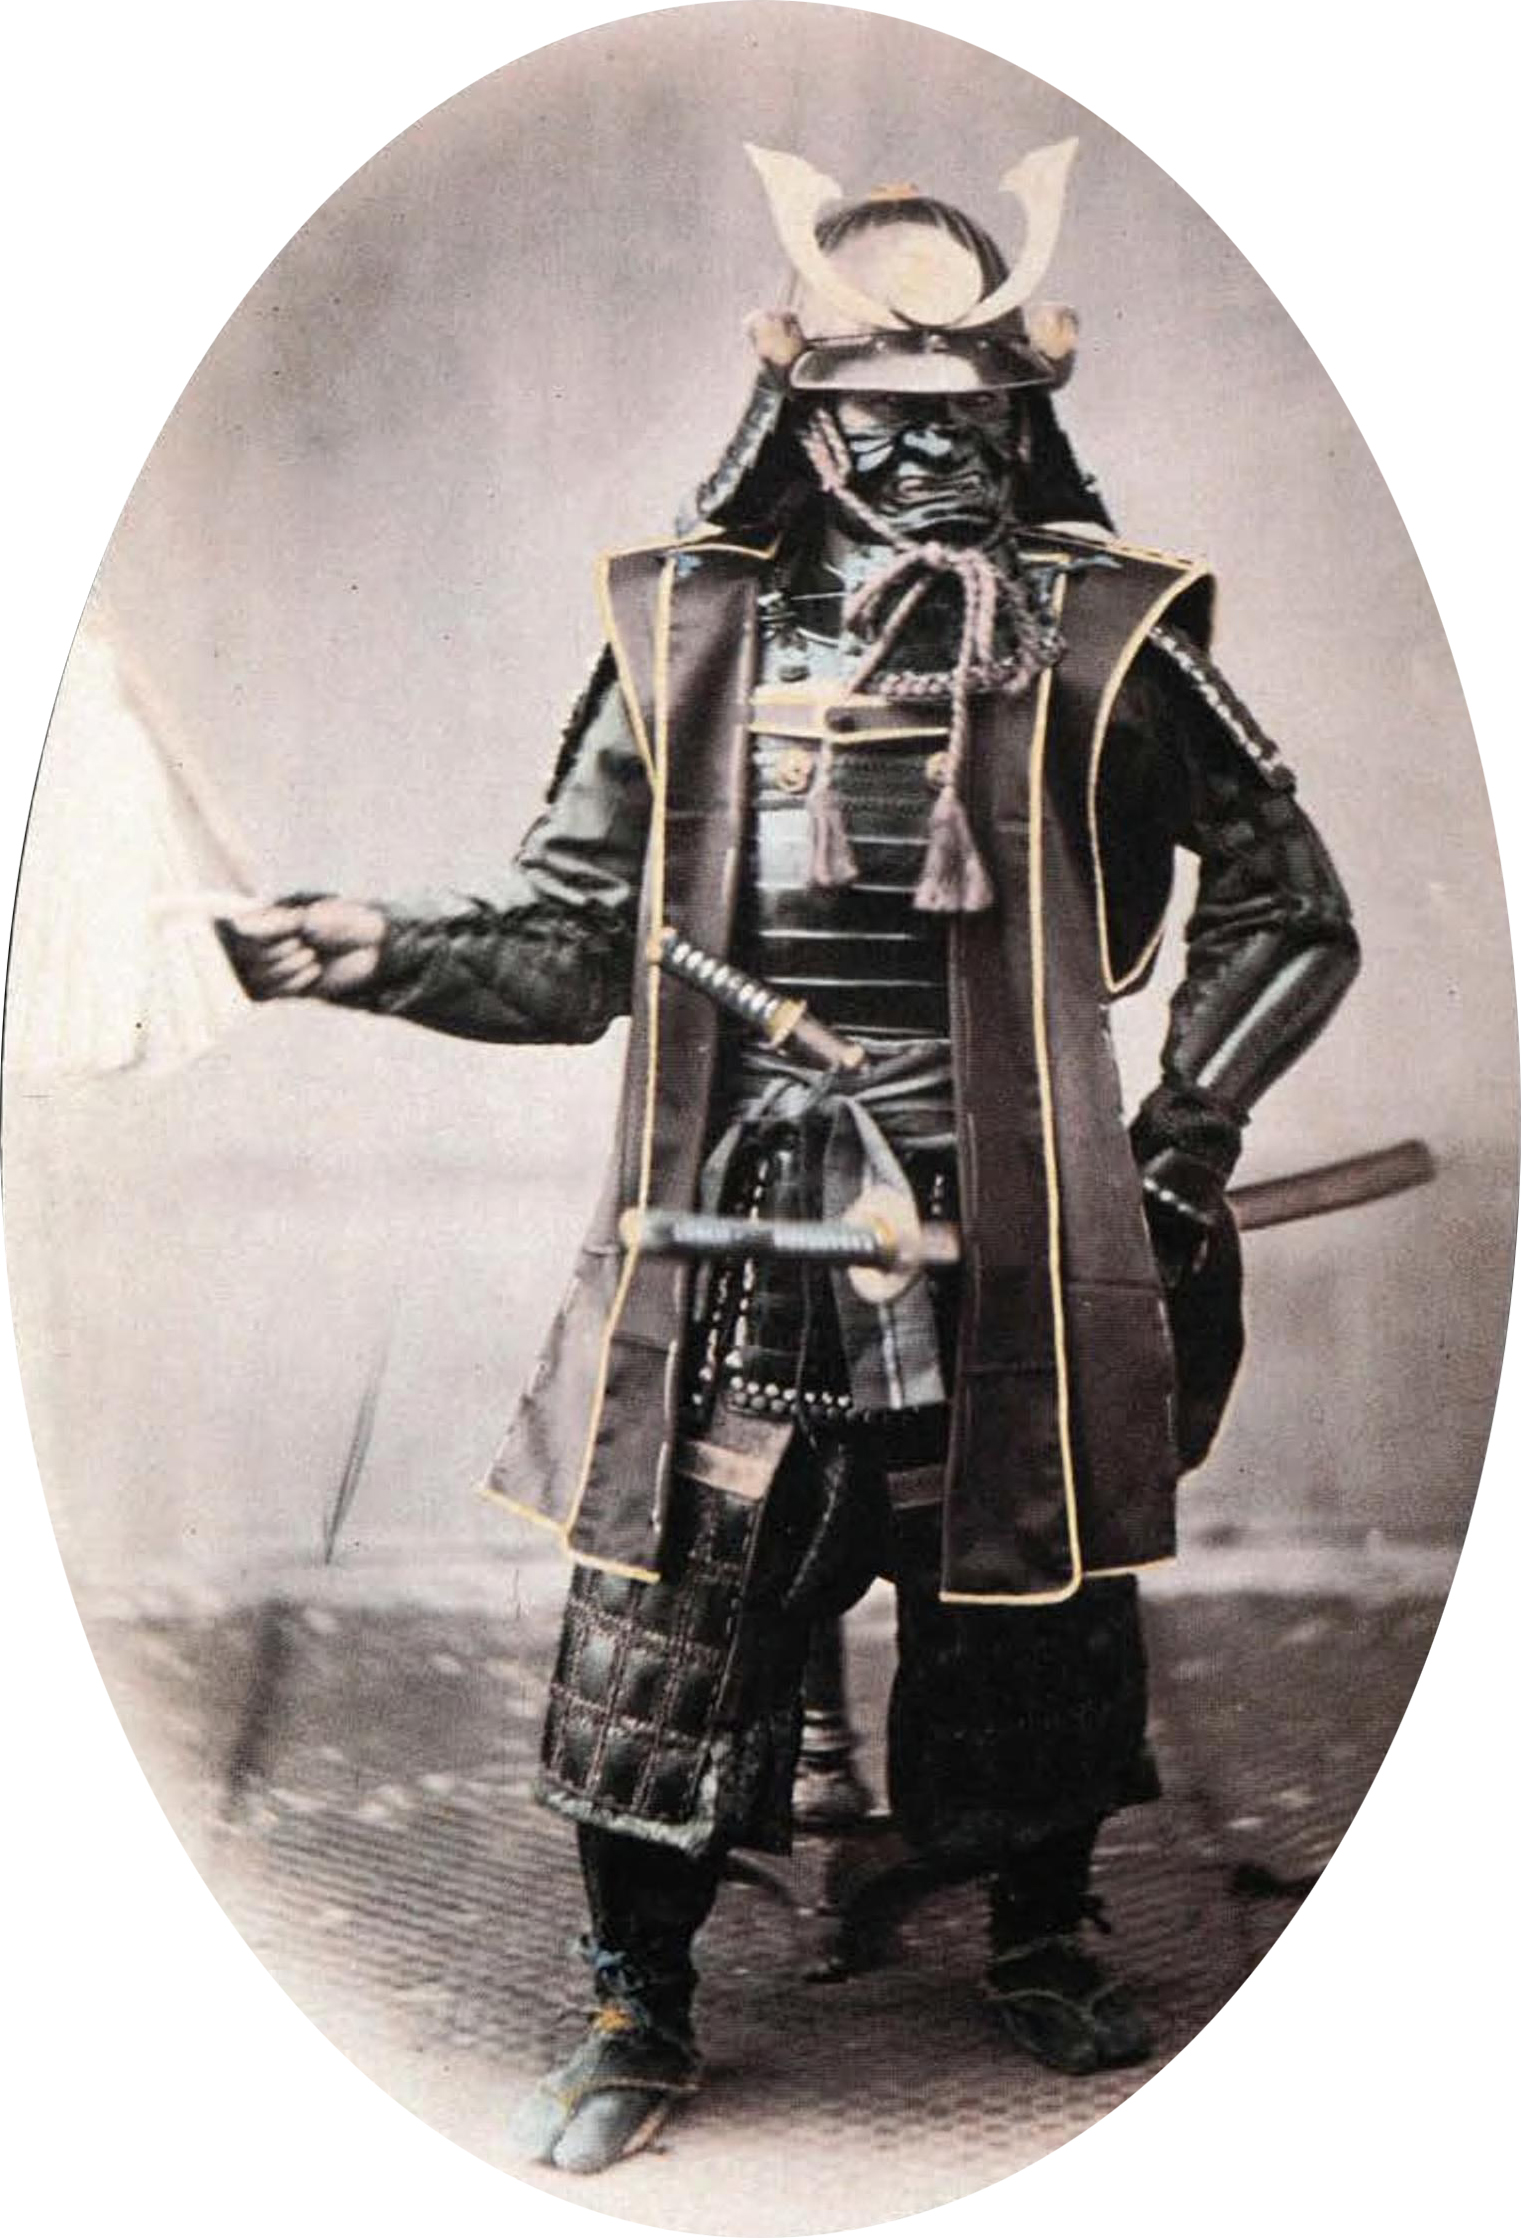 http://upload.wikimedia.org/wikipedia/commons/0/0e/Samurai.jpg